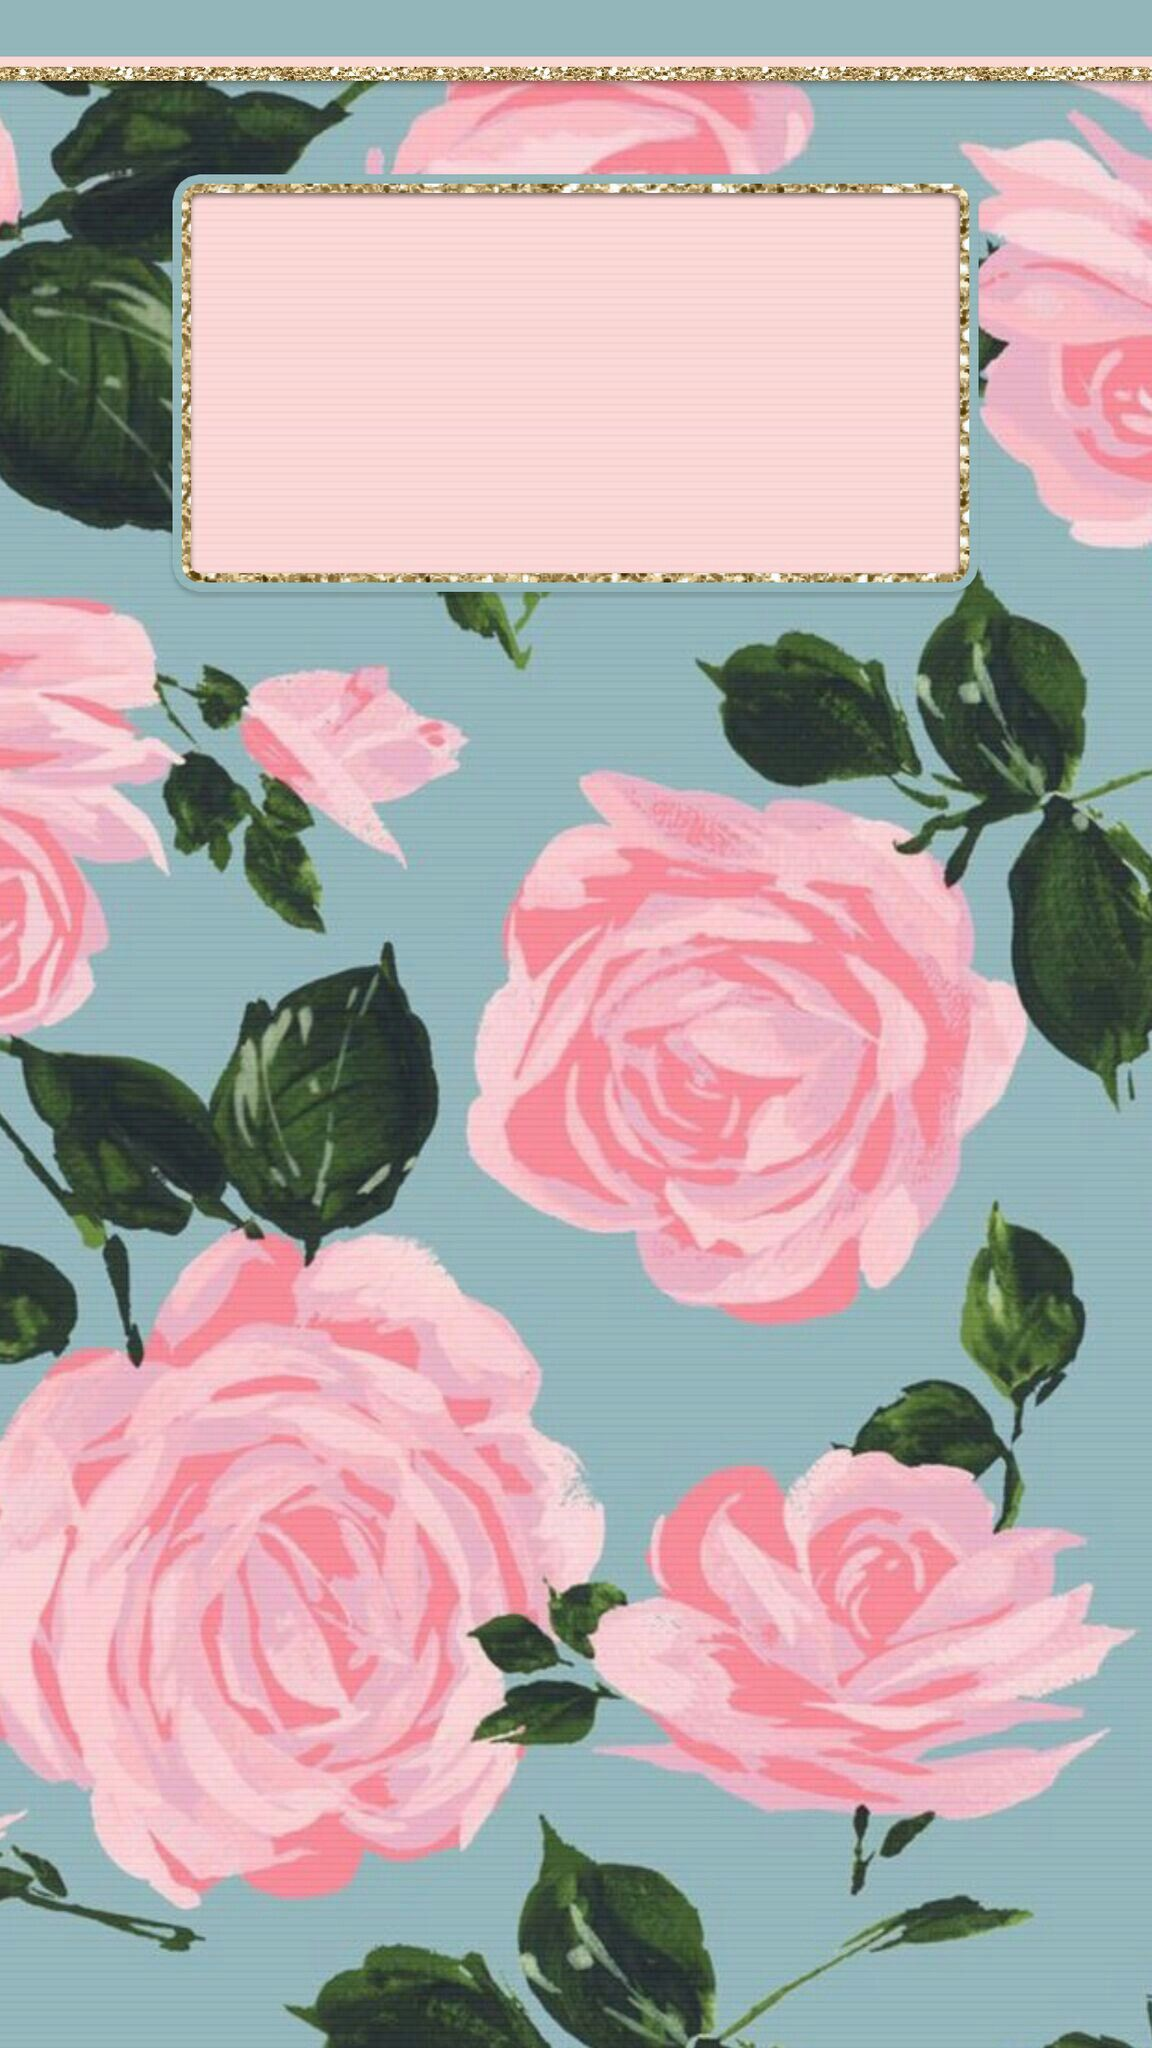 Pink roses with blue background on iphone lock screen - Pink rose wallpaper iphone ...